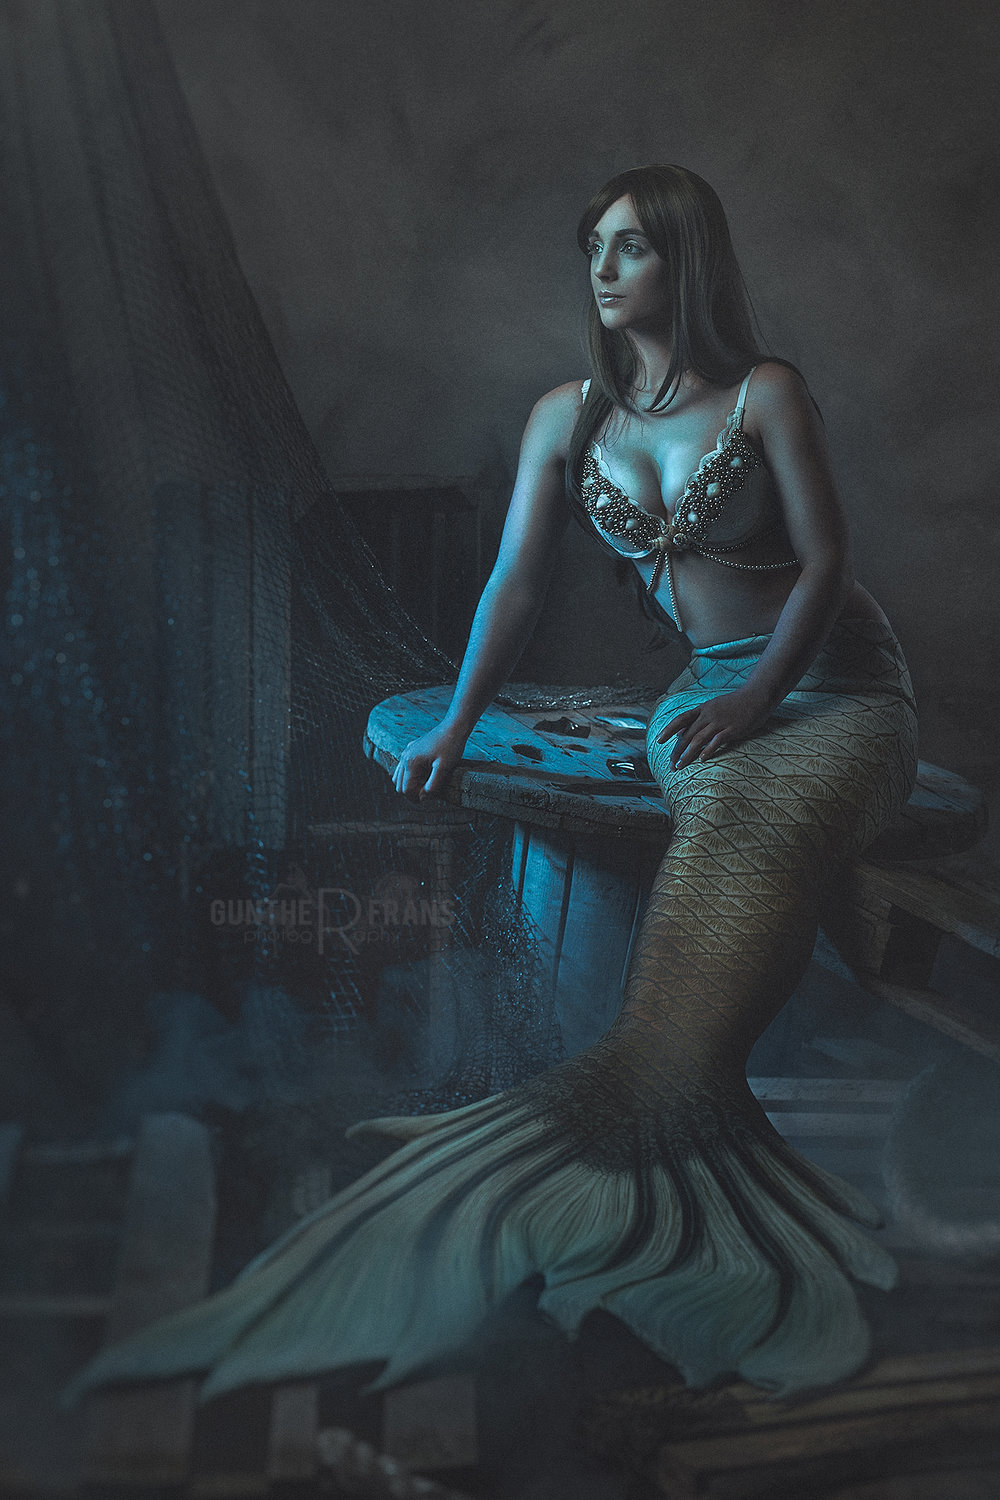 Mermaid01b.jpg